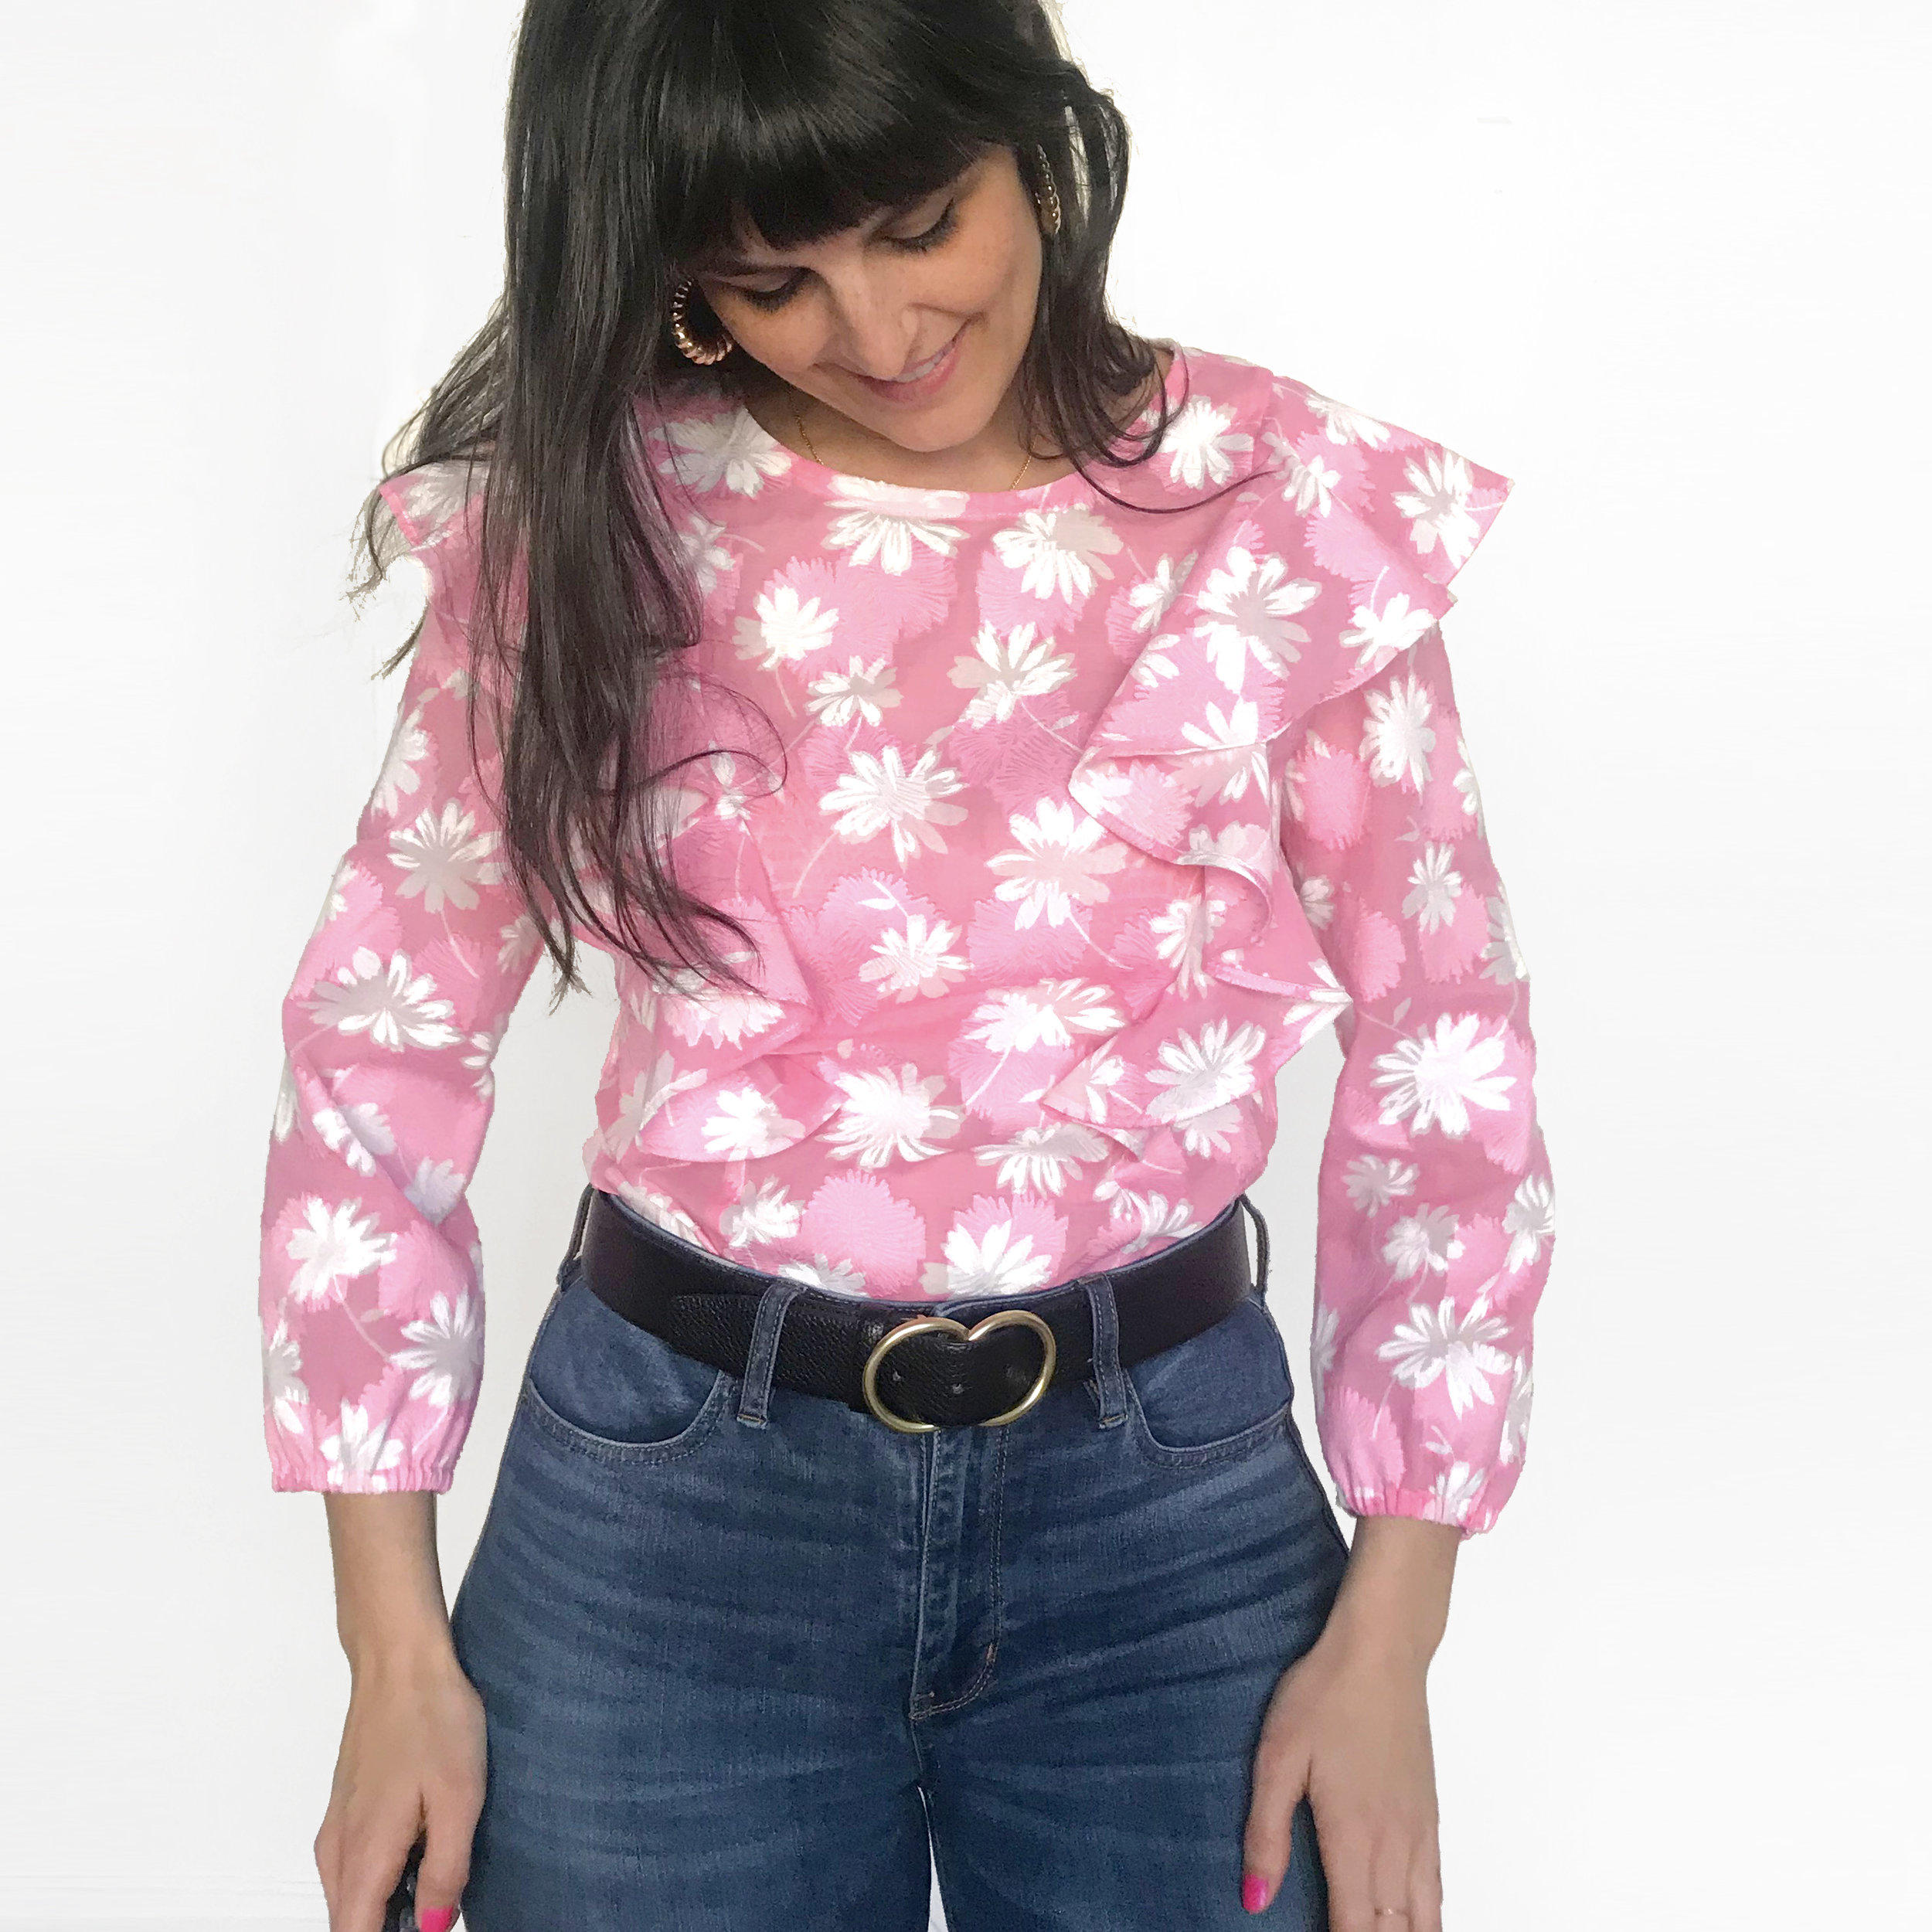 BLOUSE ON BODY.jpg